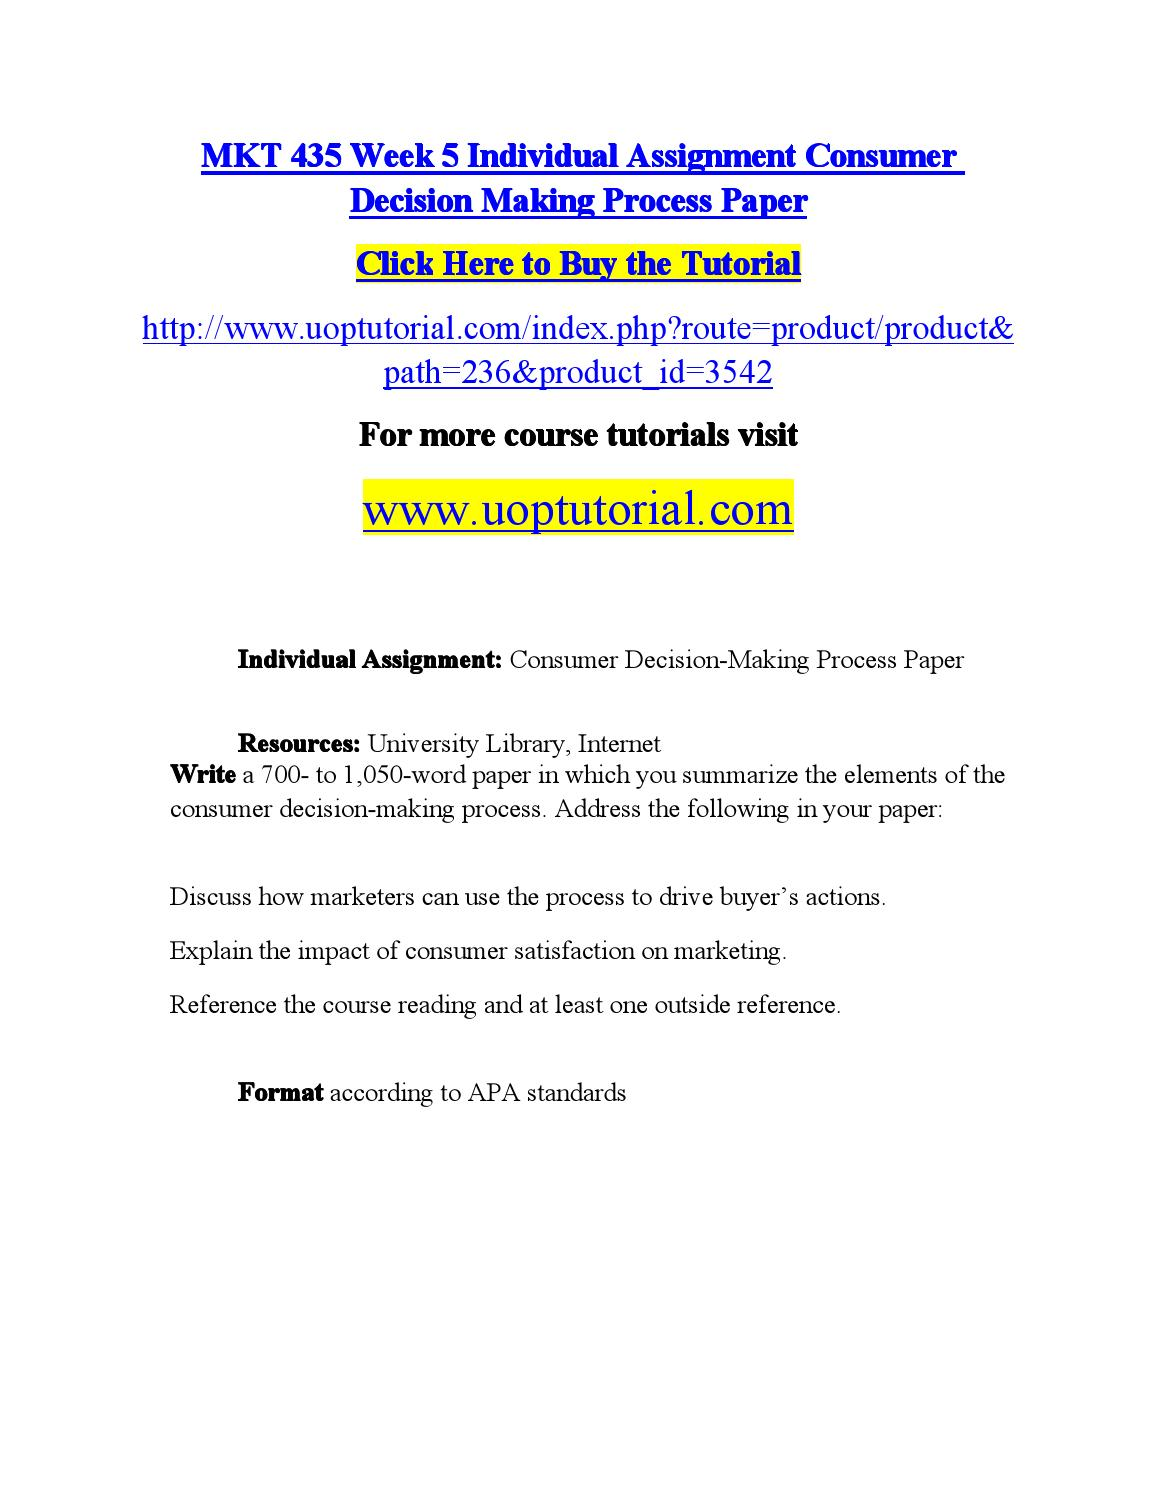 decision making process paper week one Uoptutorial provides mgt 230 week 1 individual assignment decision making process paper here also find mgt 230 week 1 related materials.